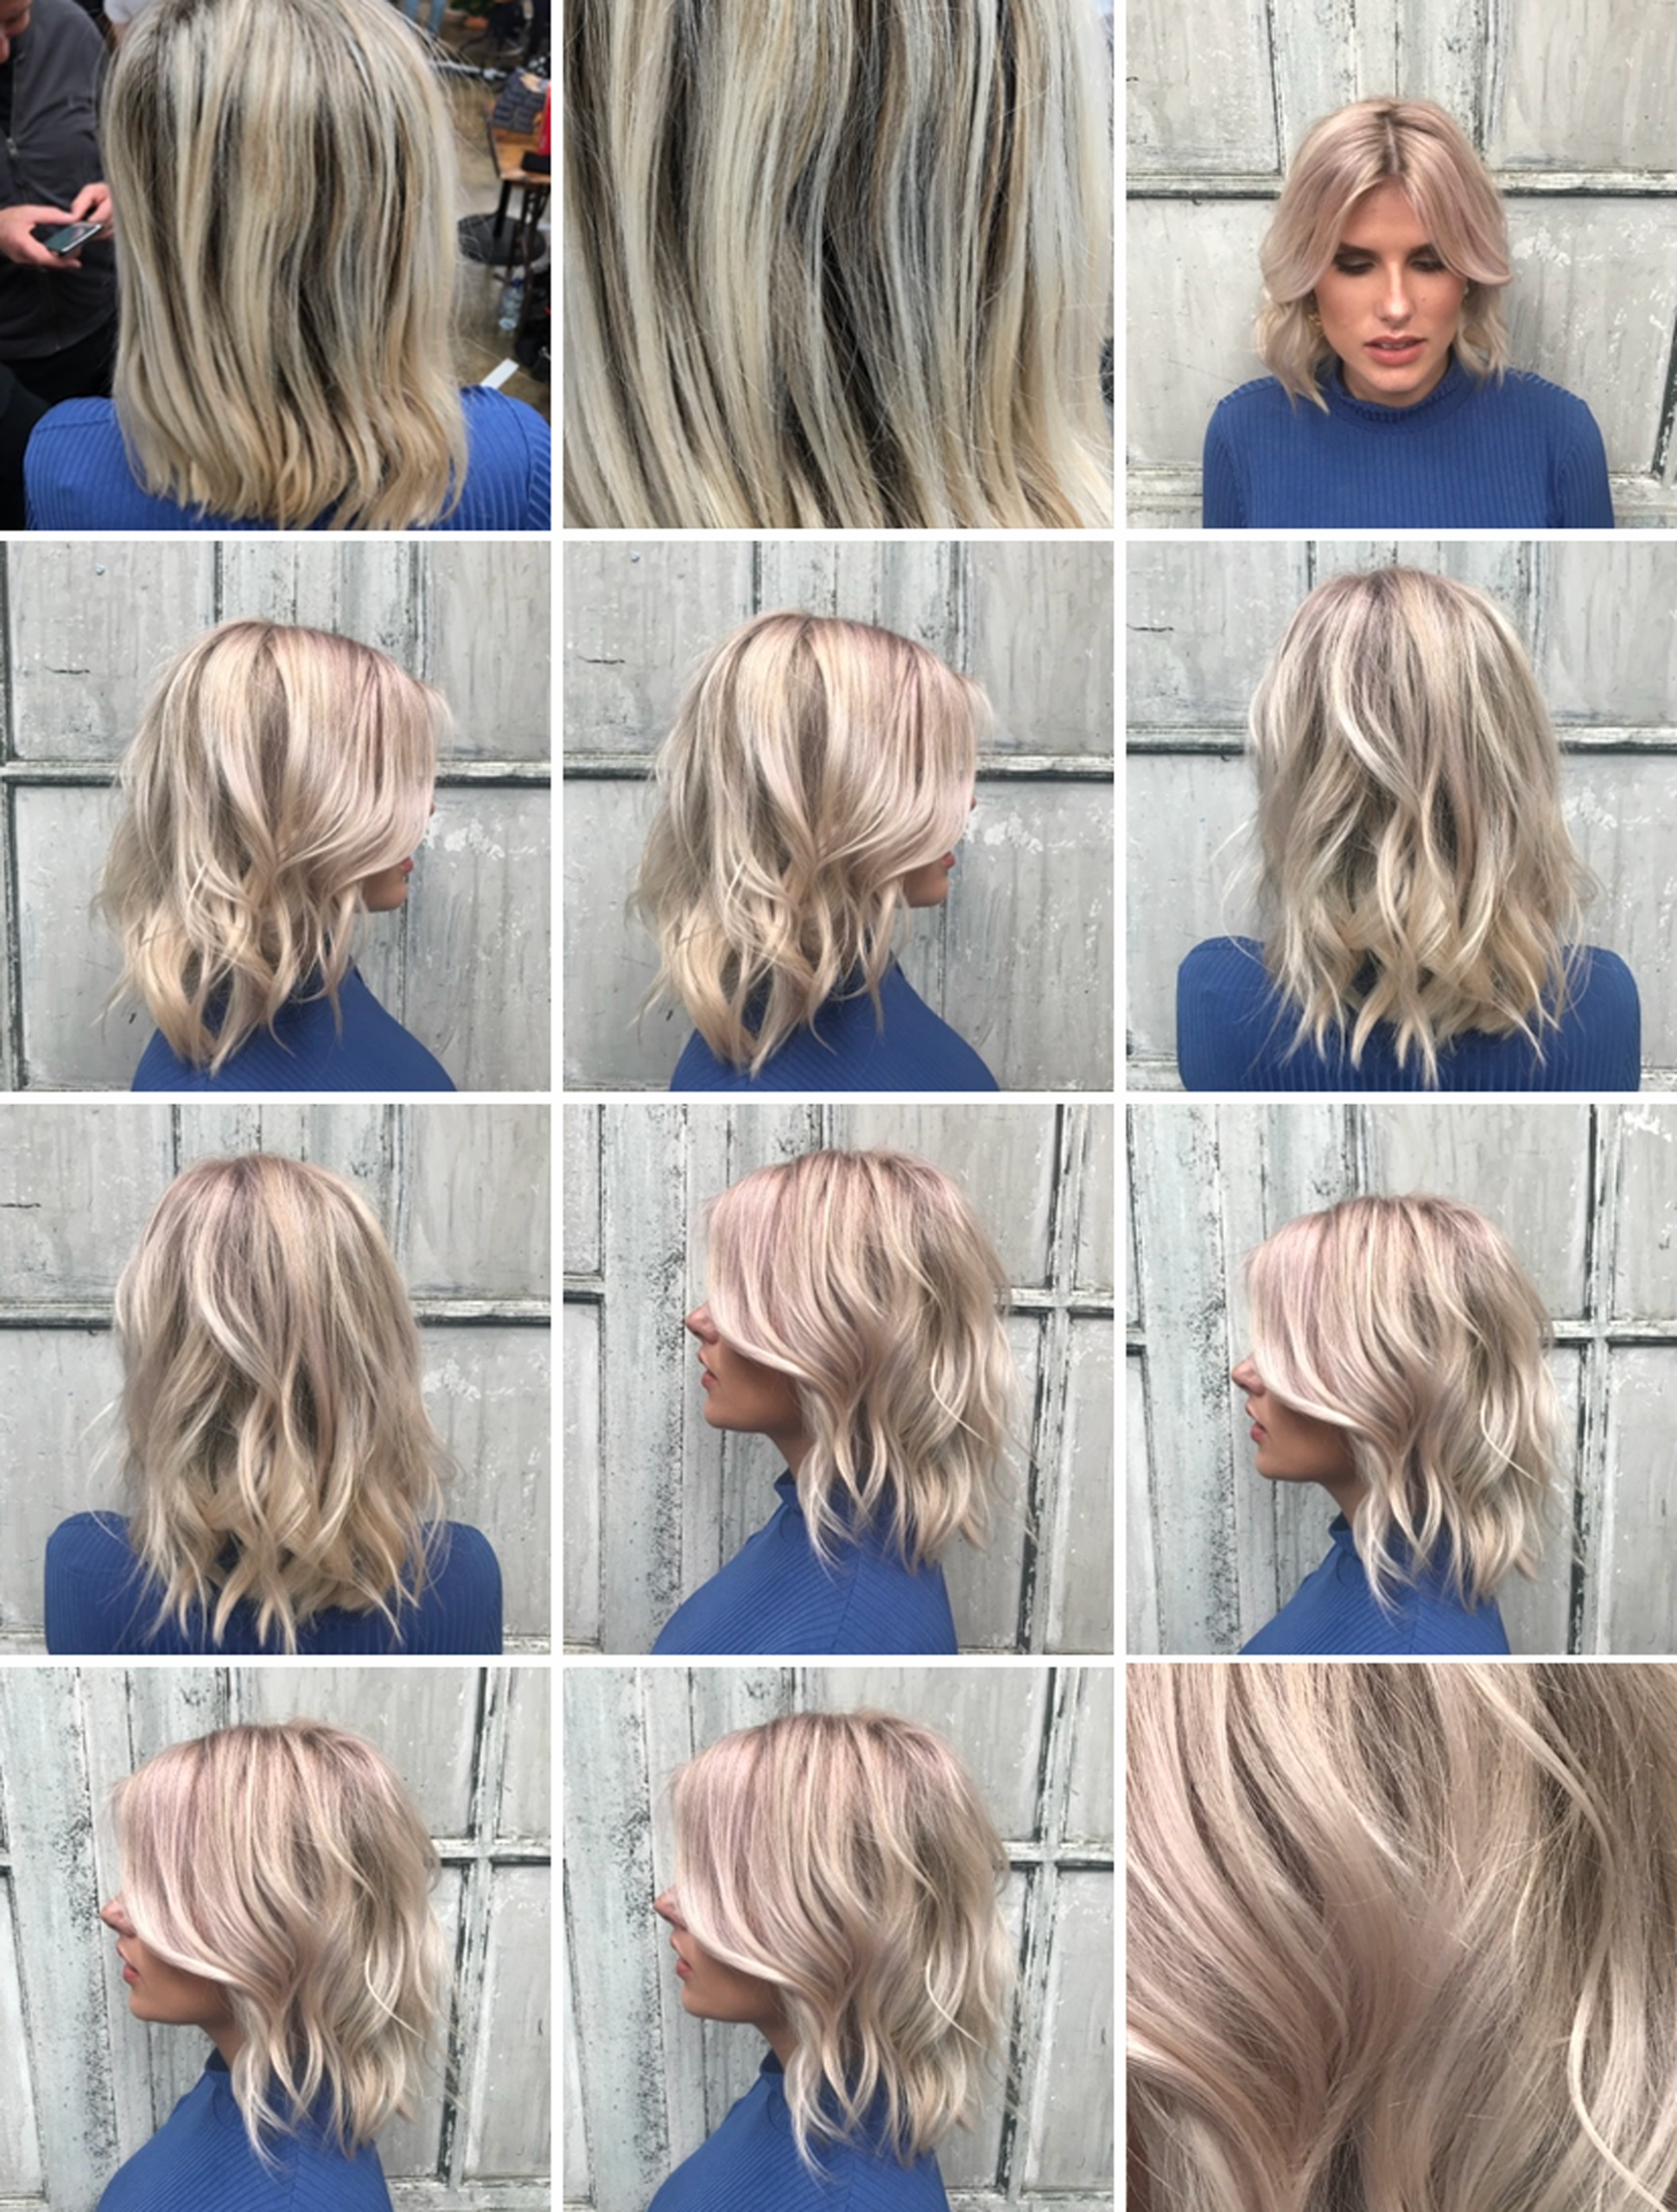 multiple before and after hair pictures of blonde girl